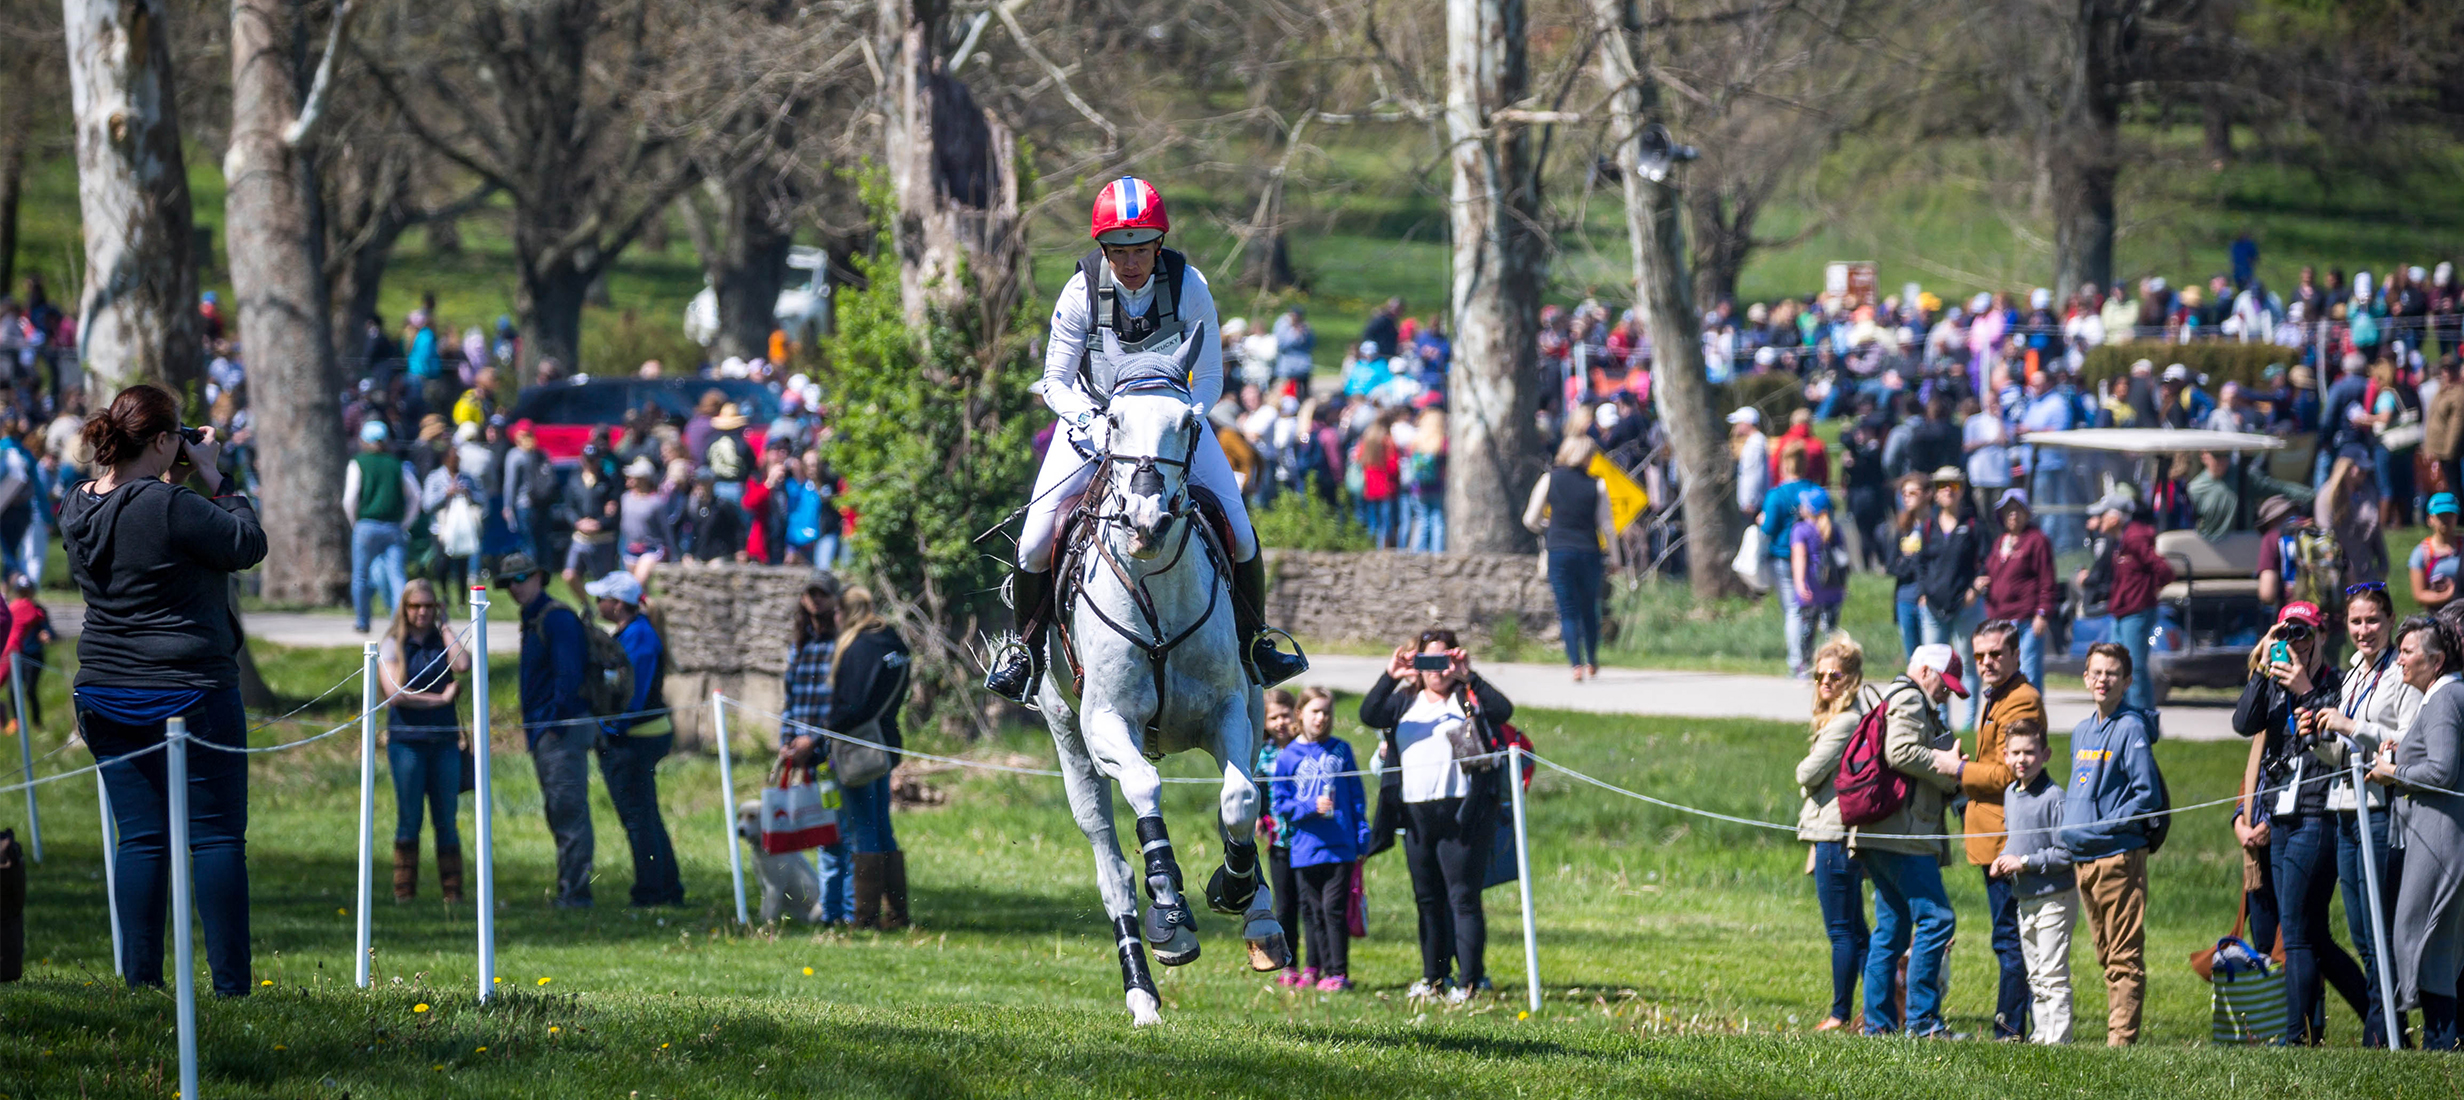 Tamra Smith (USA) and Wembley power through the Cross-Country phase of the 2018 Land Rover Kentucky Three-Day Event